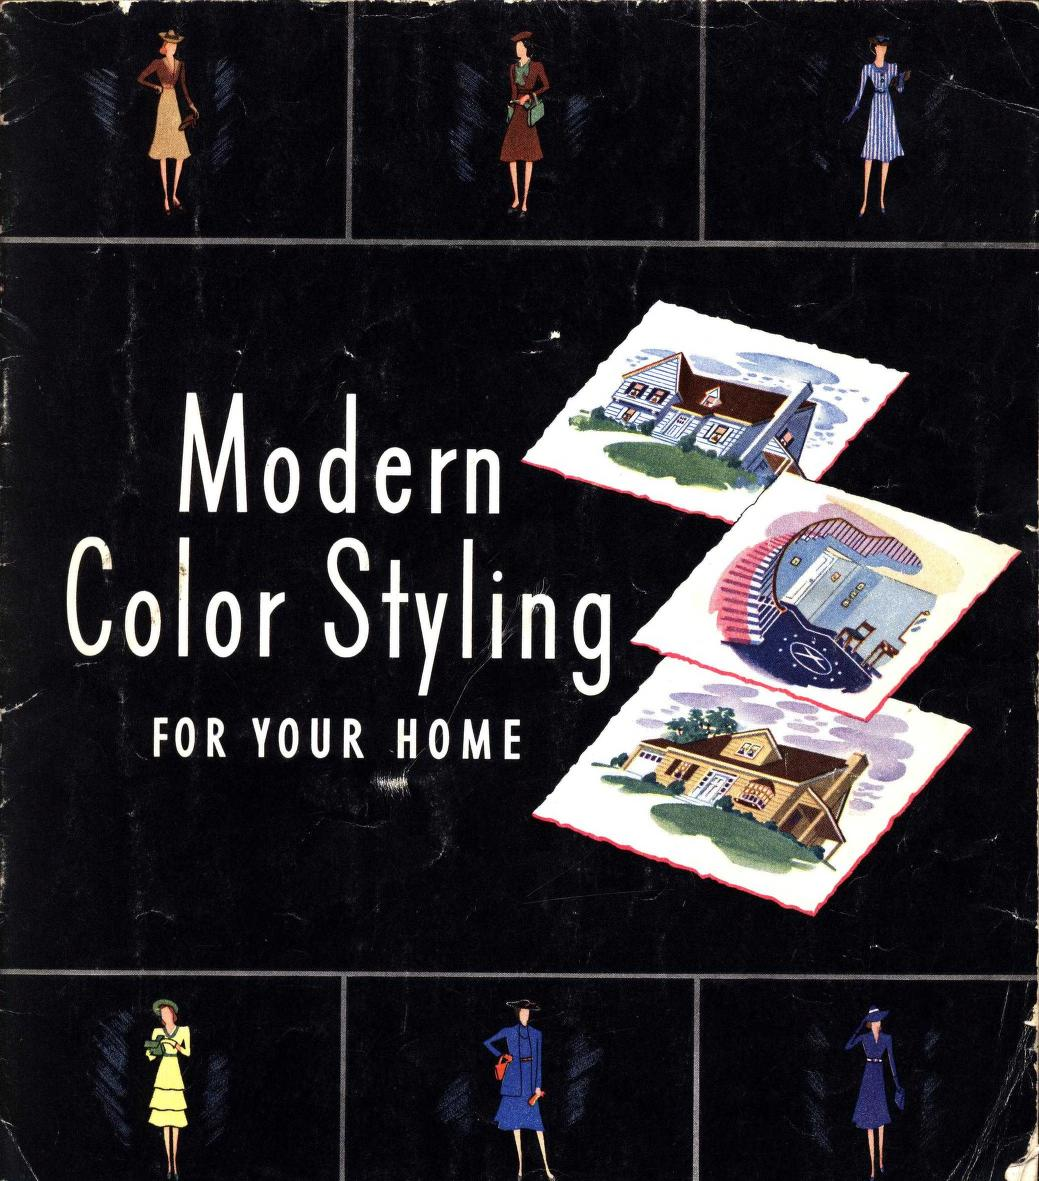 Implementing Modern Color Styling in Your New S&A Home